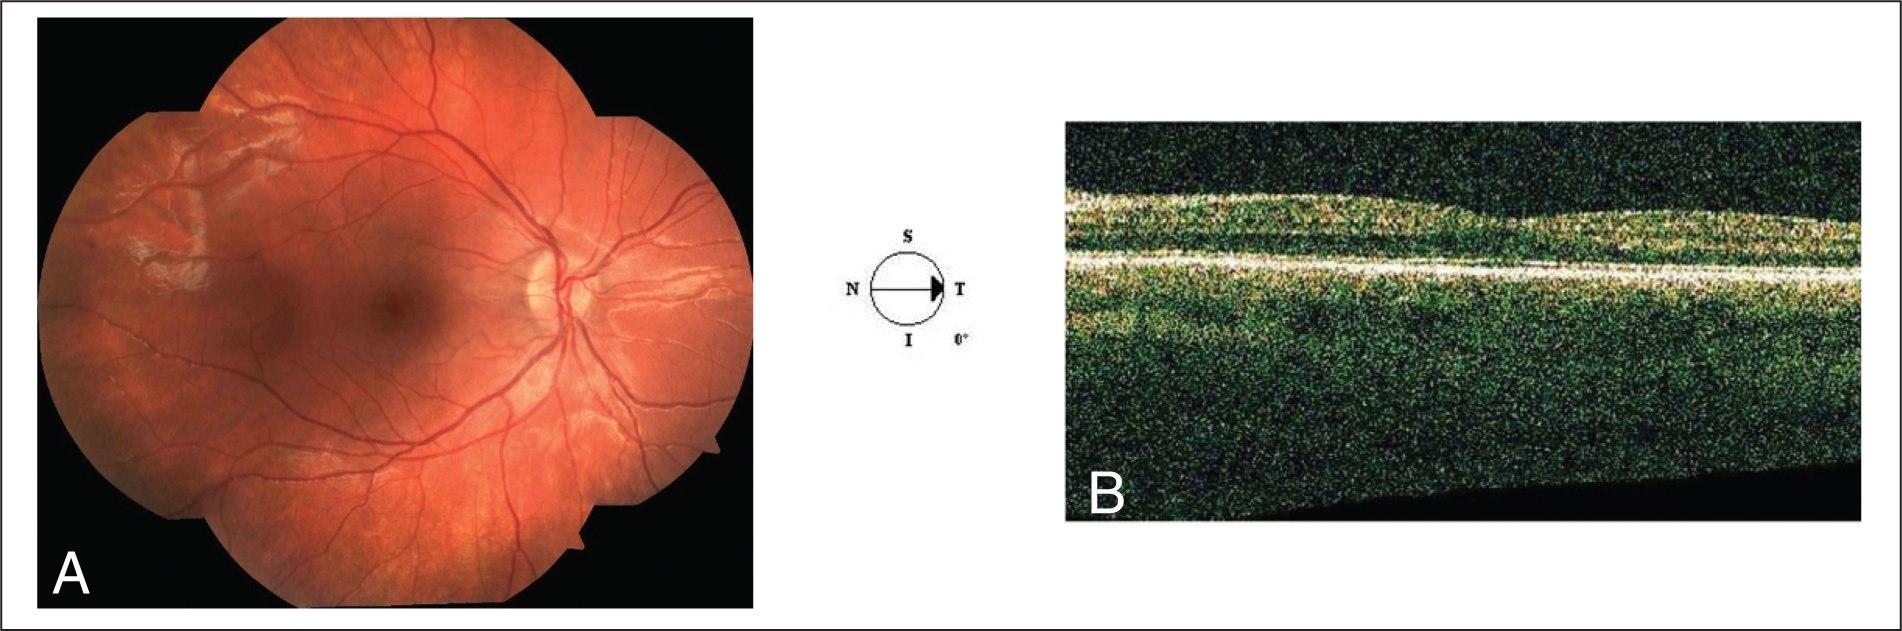 The Macular and Choroidal Edema Disappeared on (A) Funduscopy and (B) Optical Coherence Tomography.